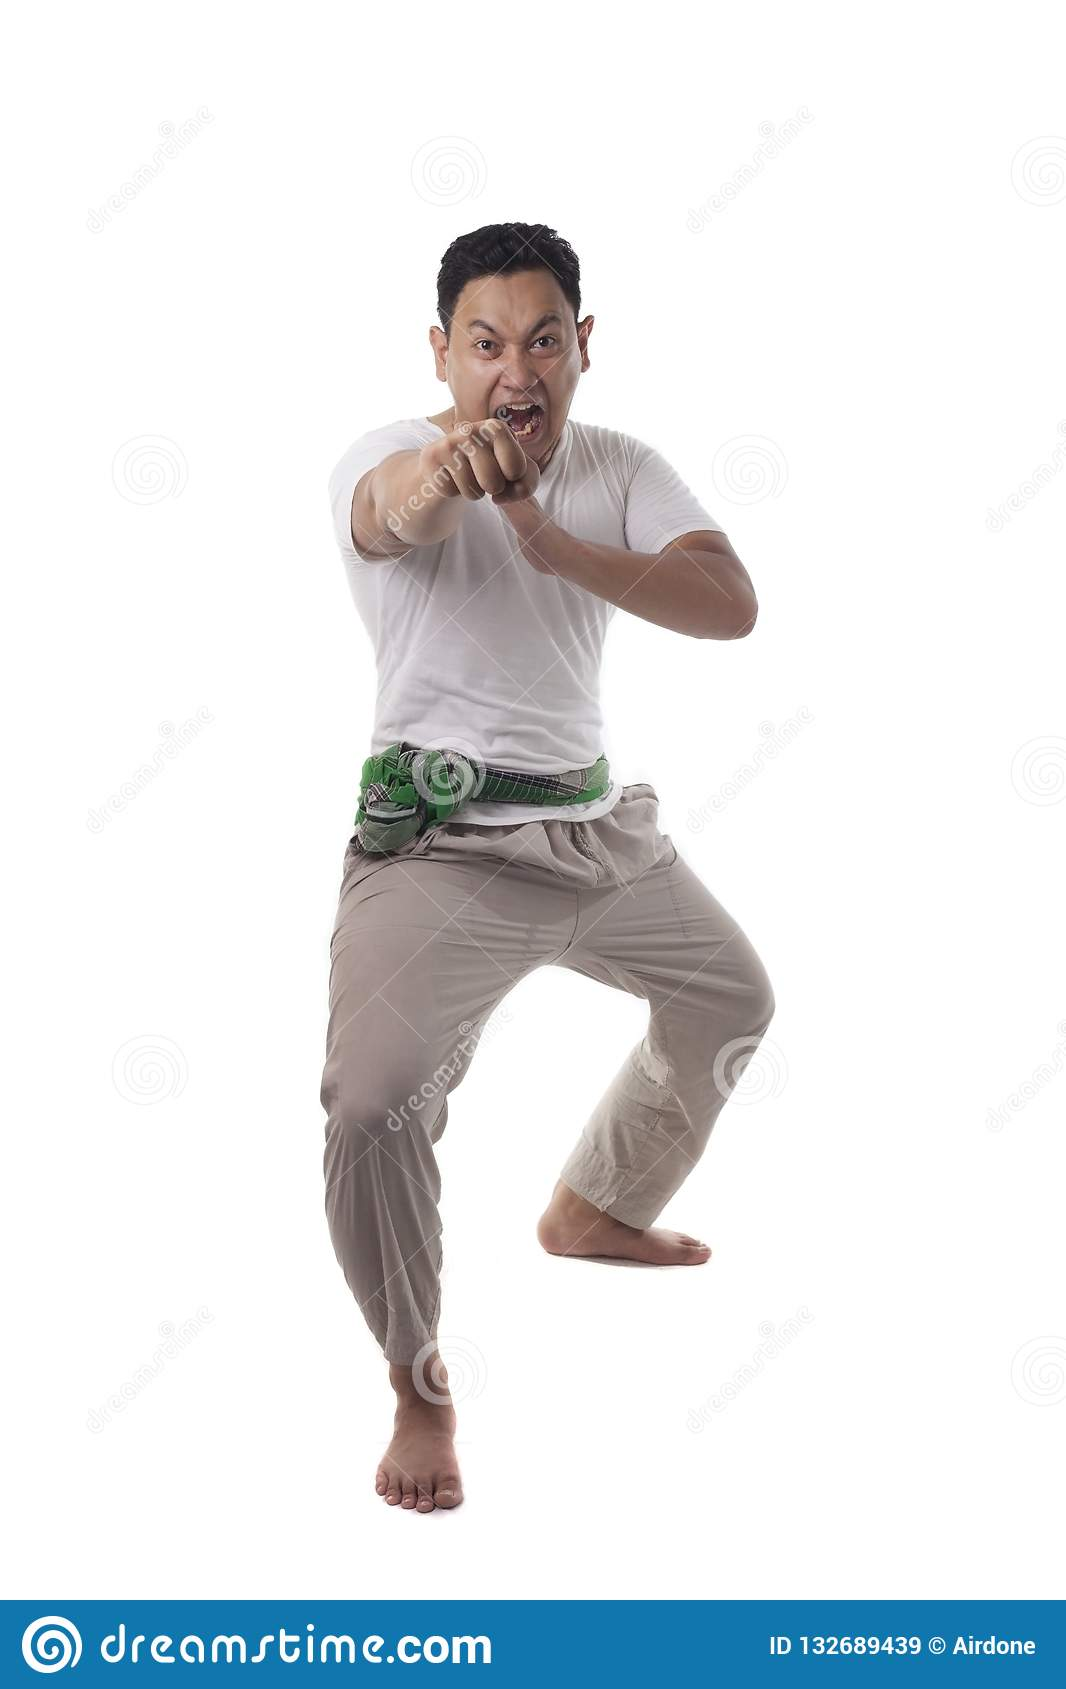 Foto Jurus Pencak Silat : jurus, pencak, silat, Pencak, Silat,, Indonesian, Traditional, Martial, Stock, Image, Freehand,, Karate:, 132689439